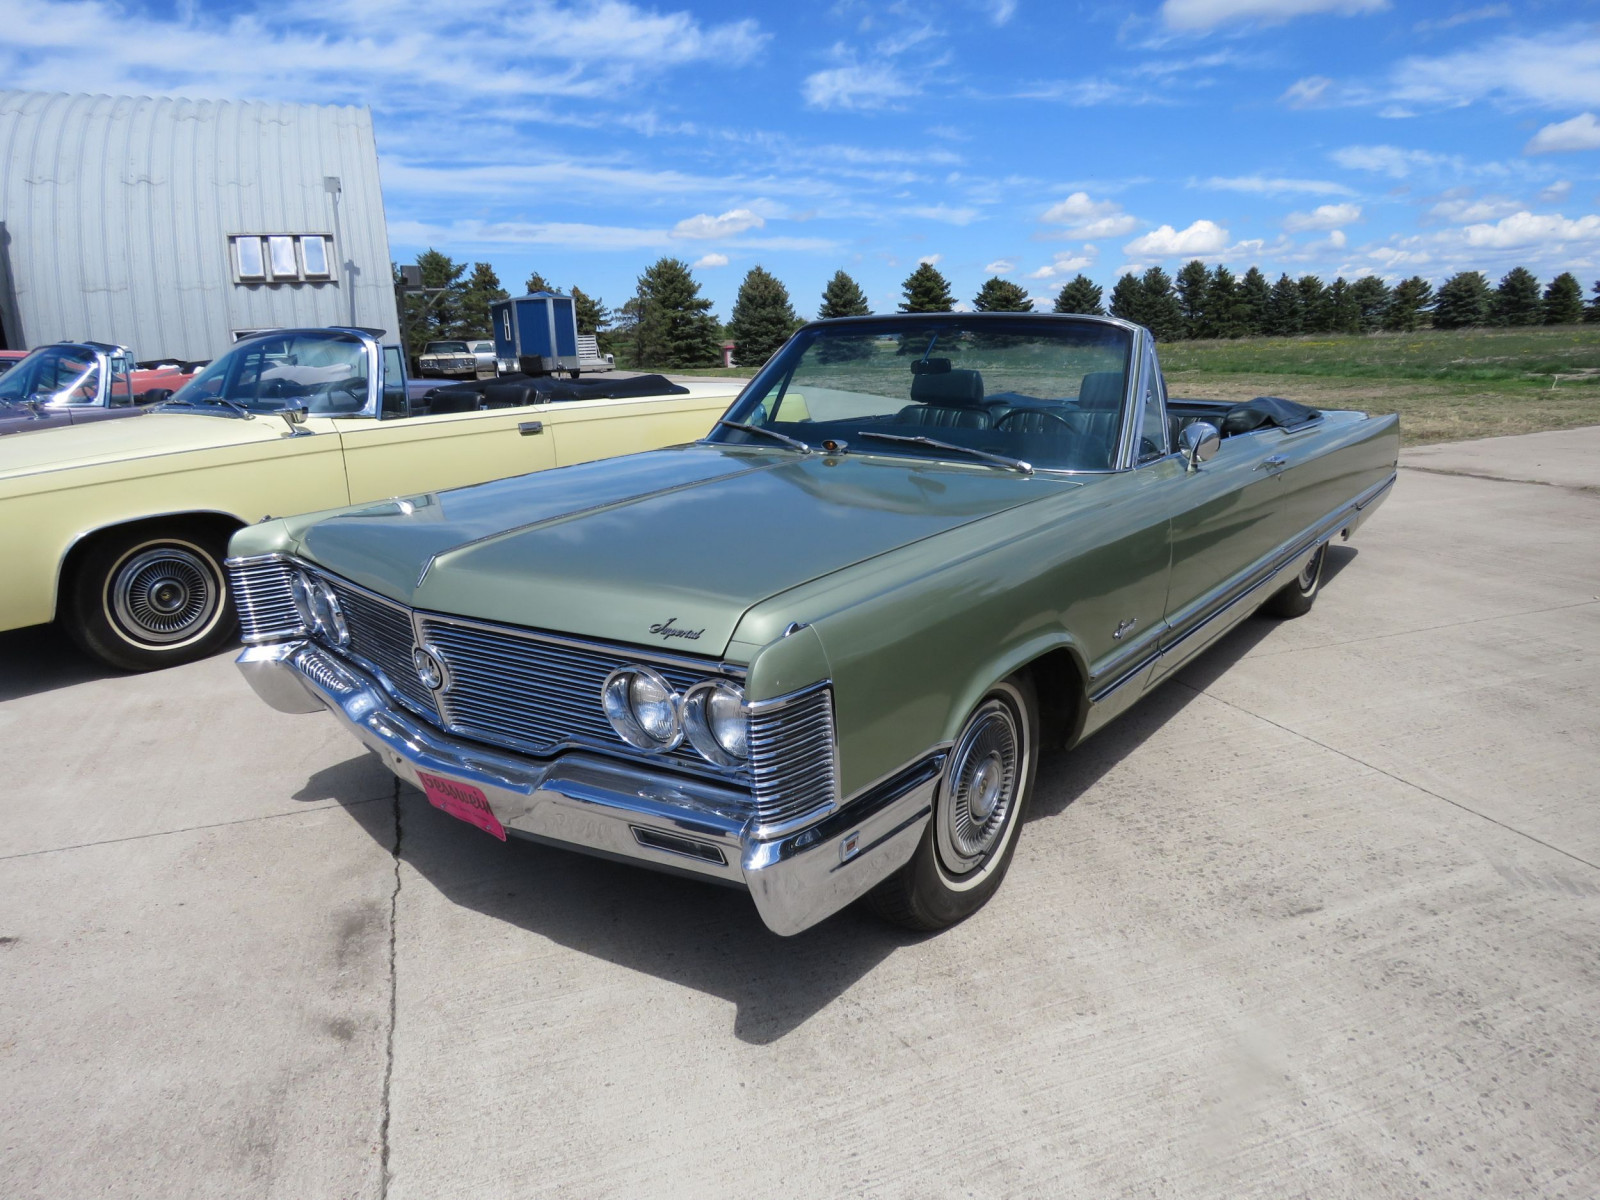 1968 Chrysler Imperial Crown Convertible - Image 1